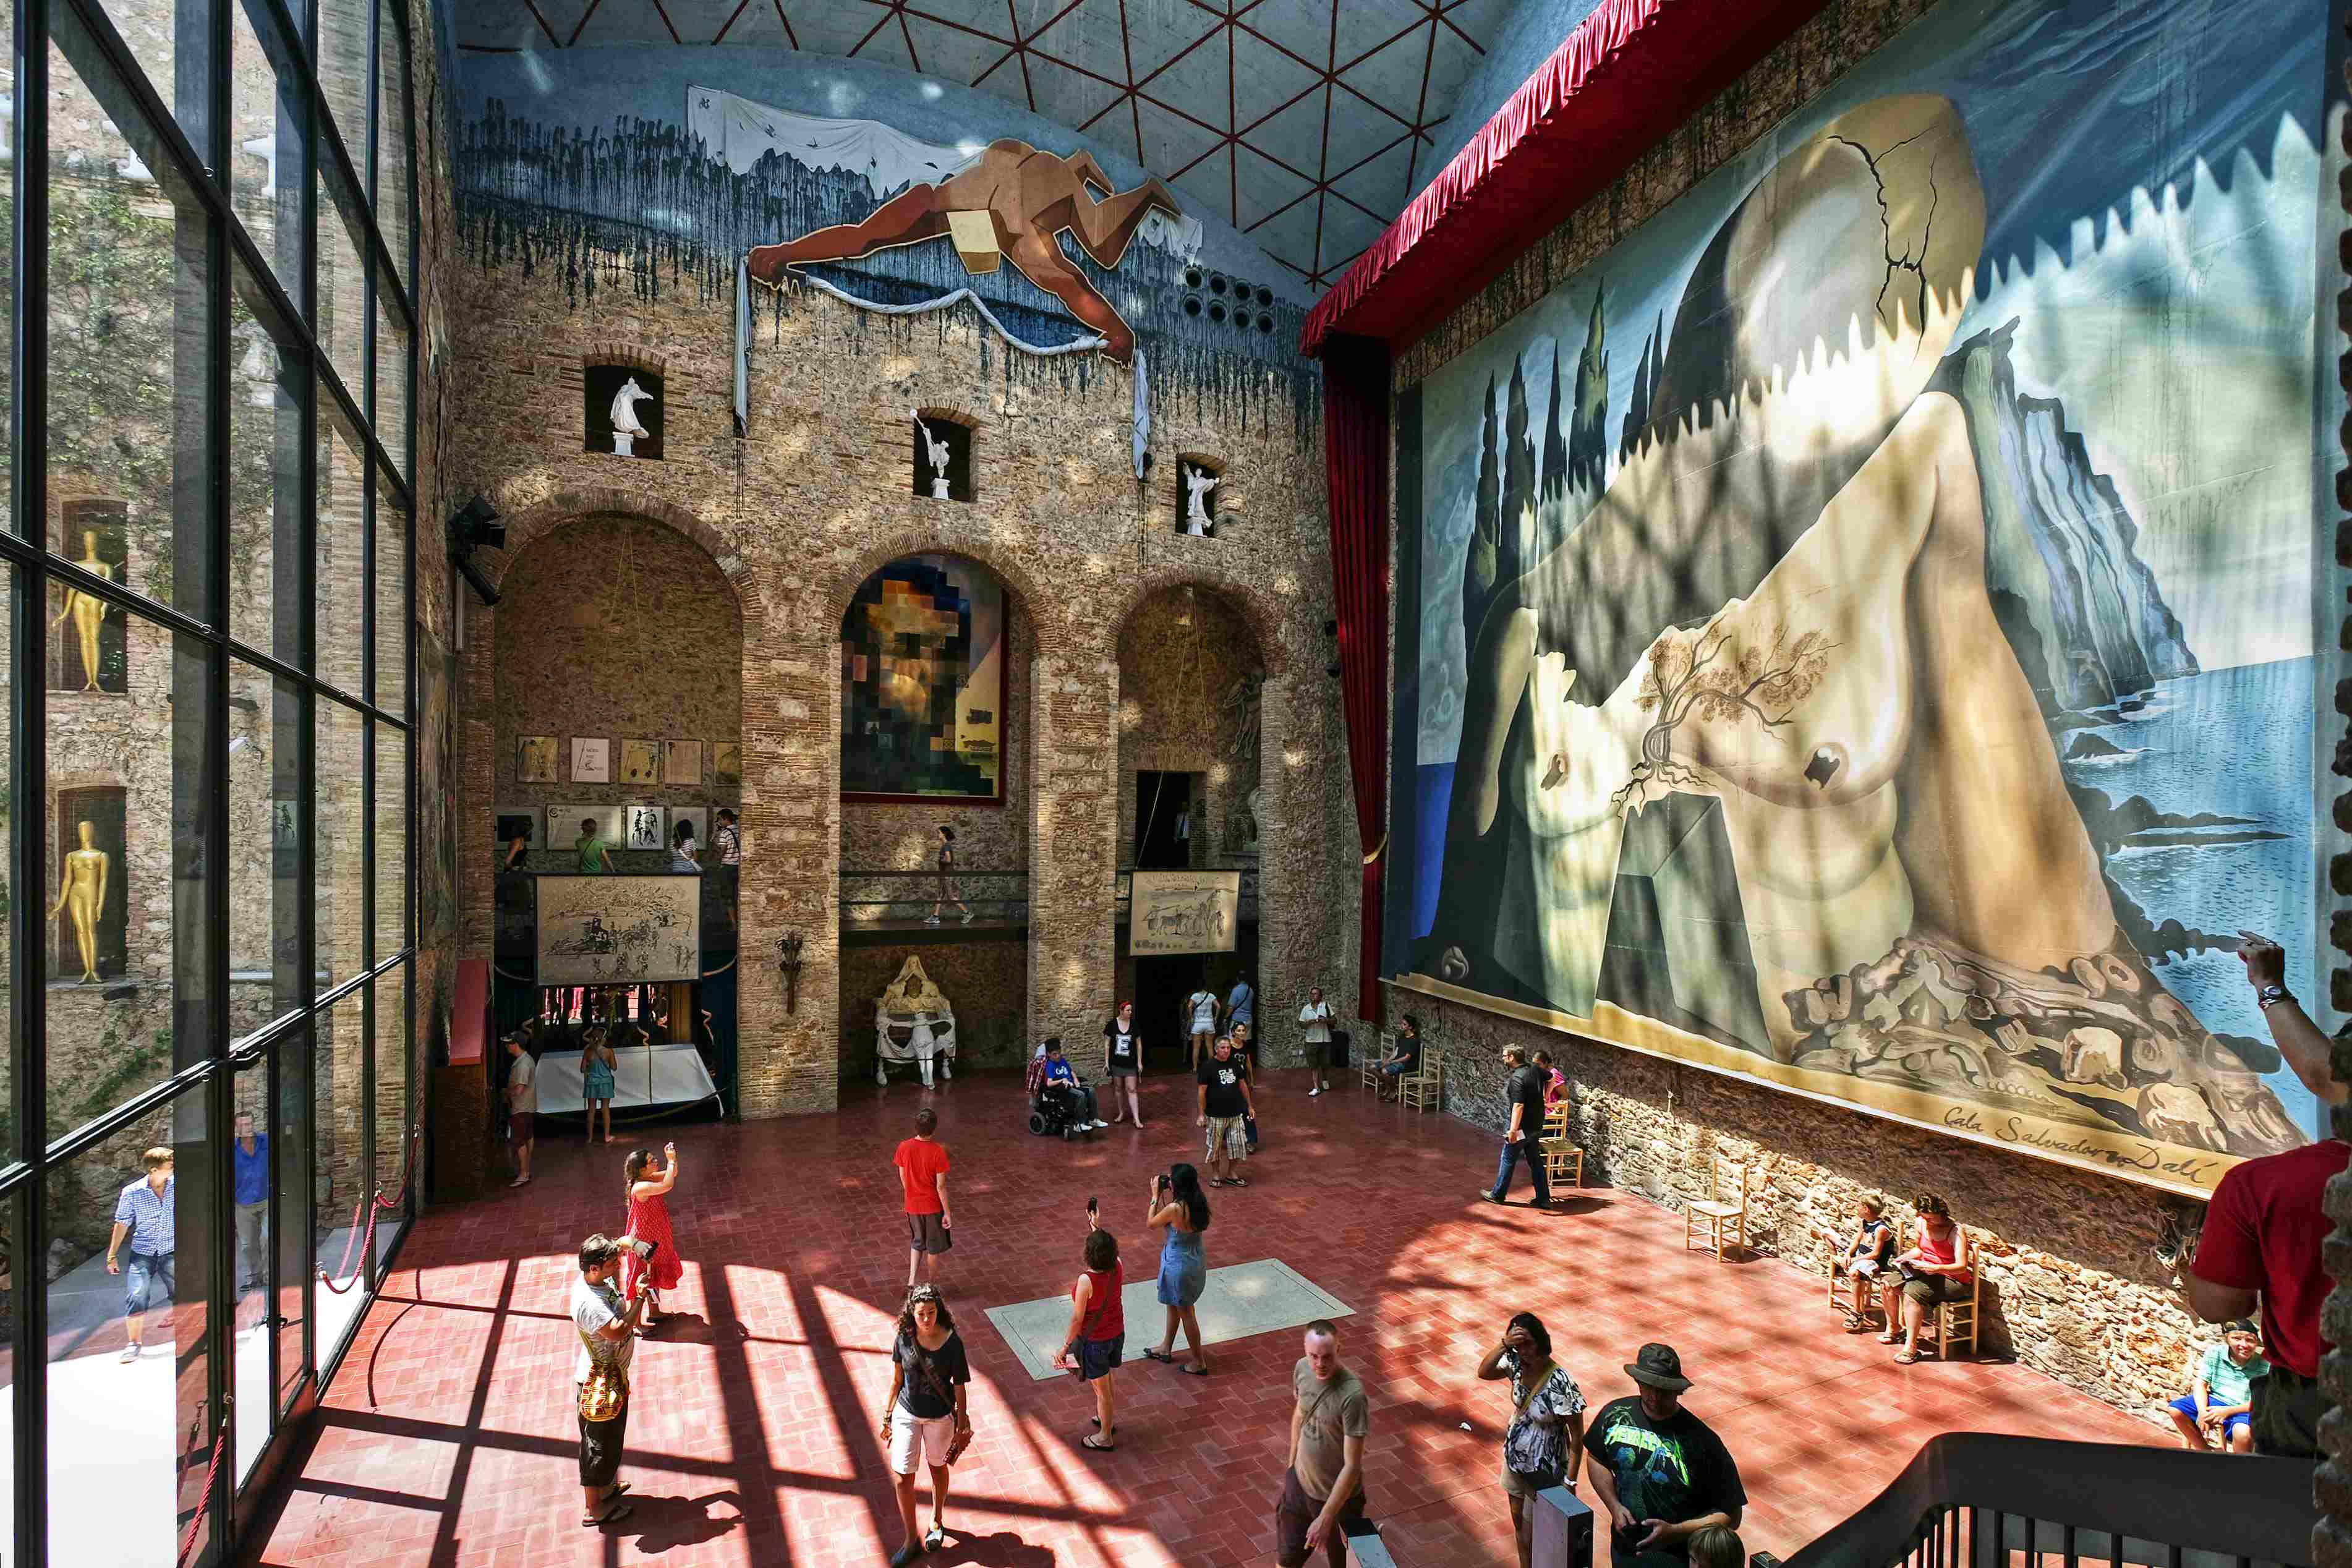 Interior of Dalí Theatre-Museum in Figueres, Spain.